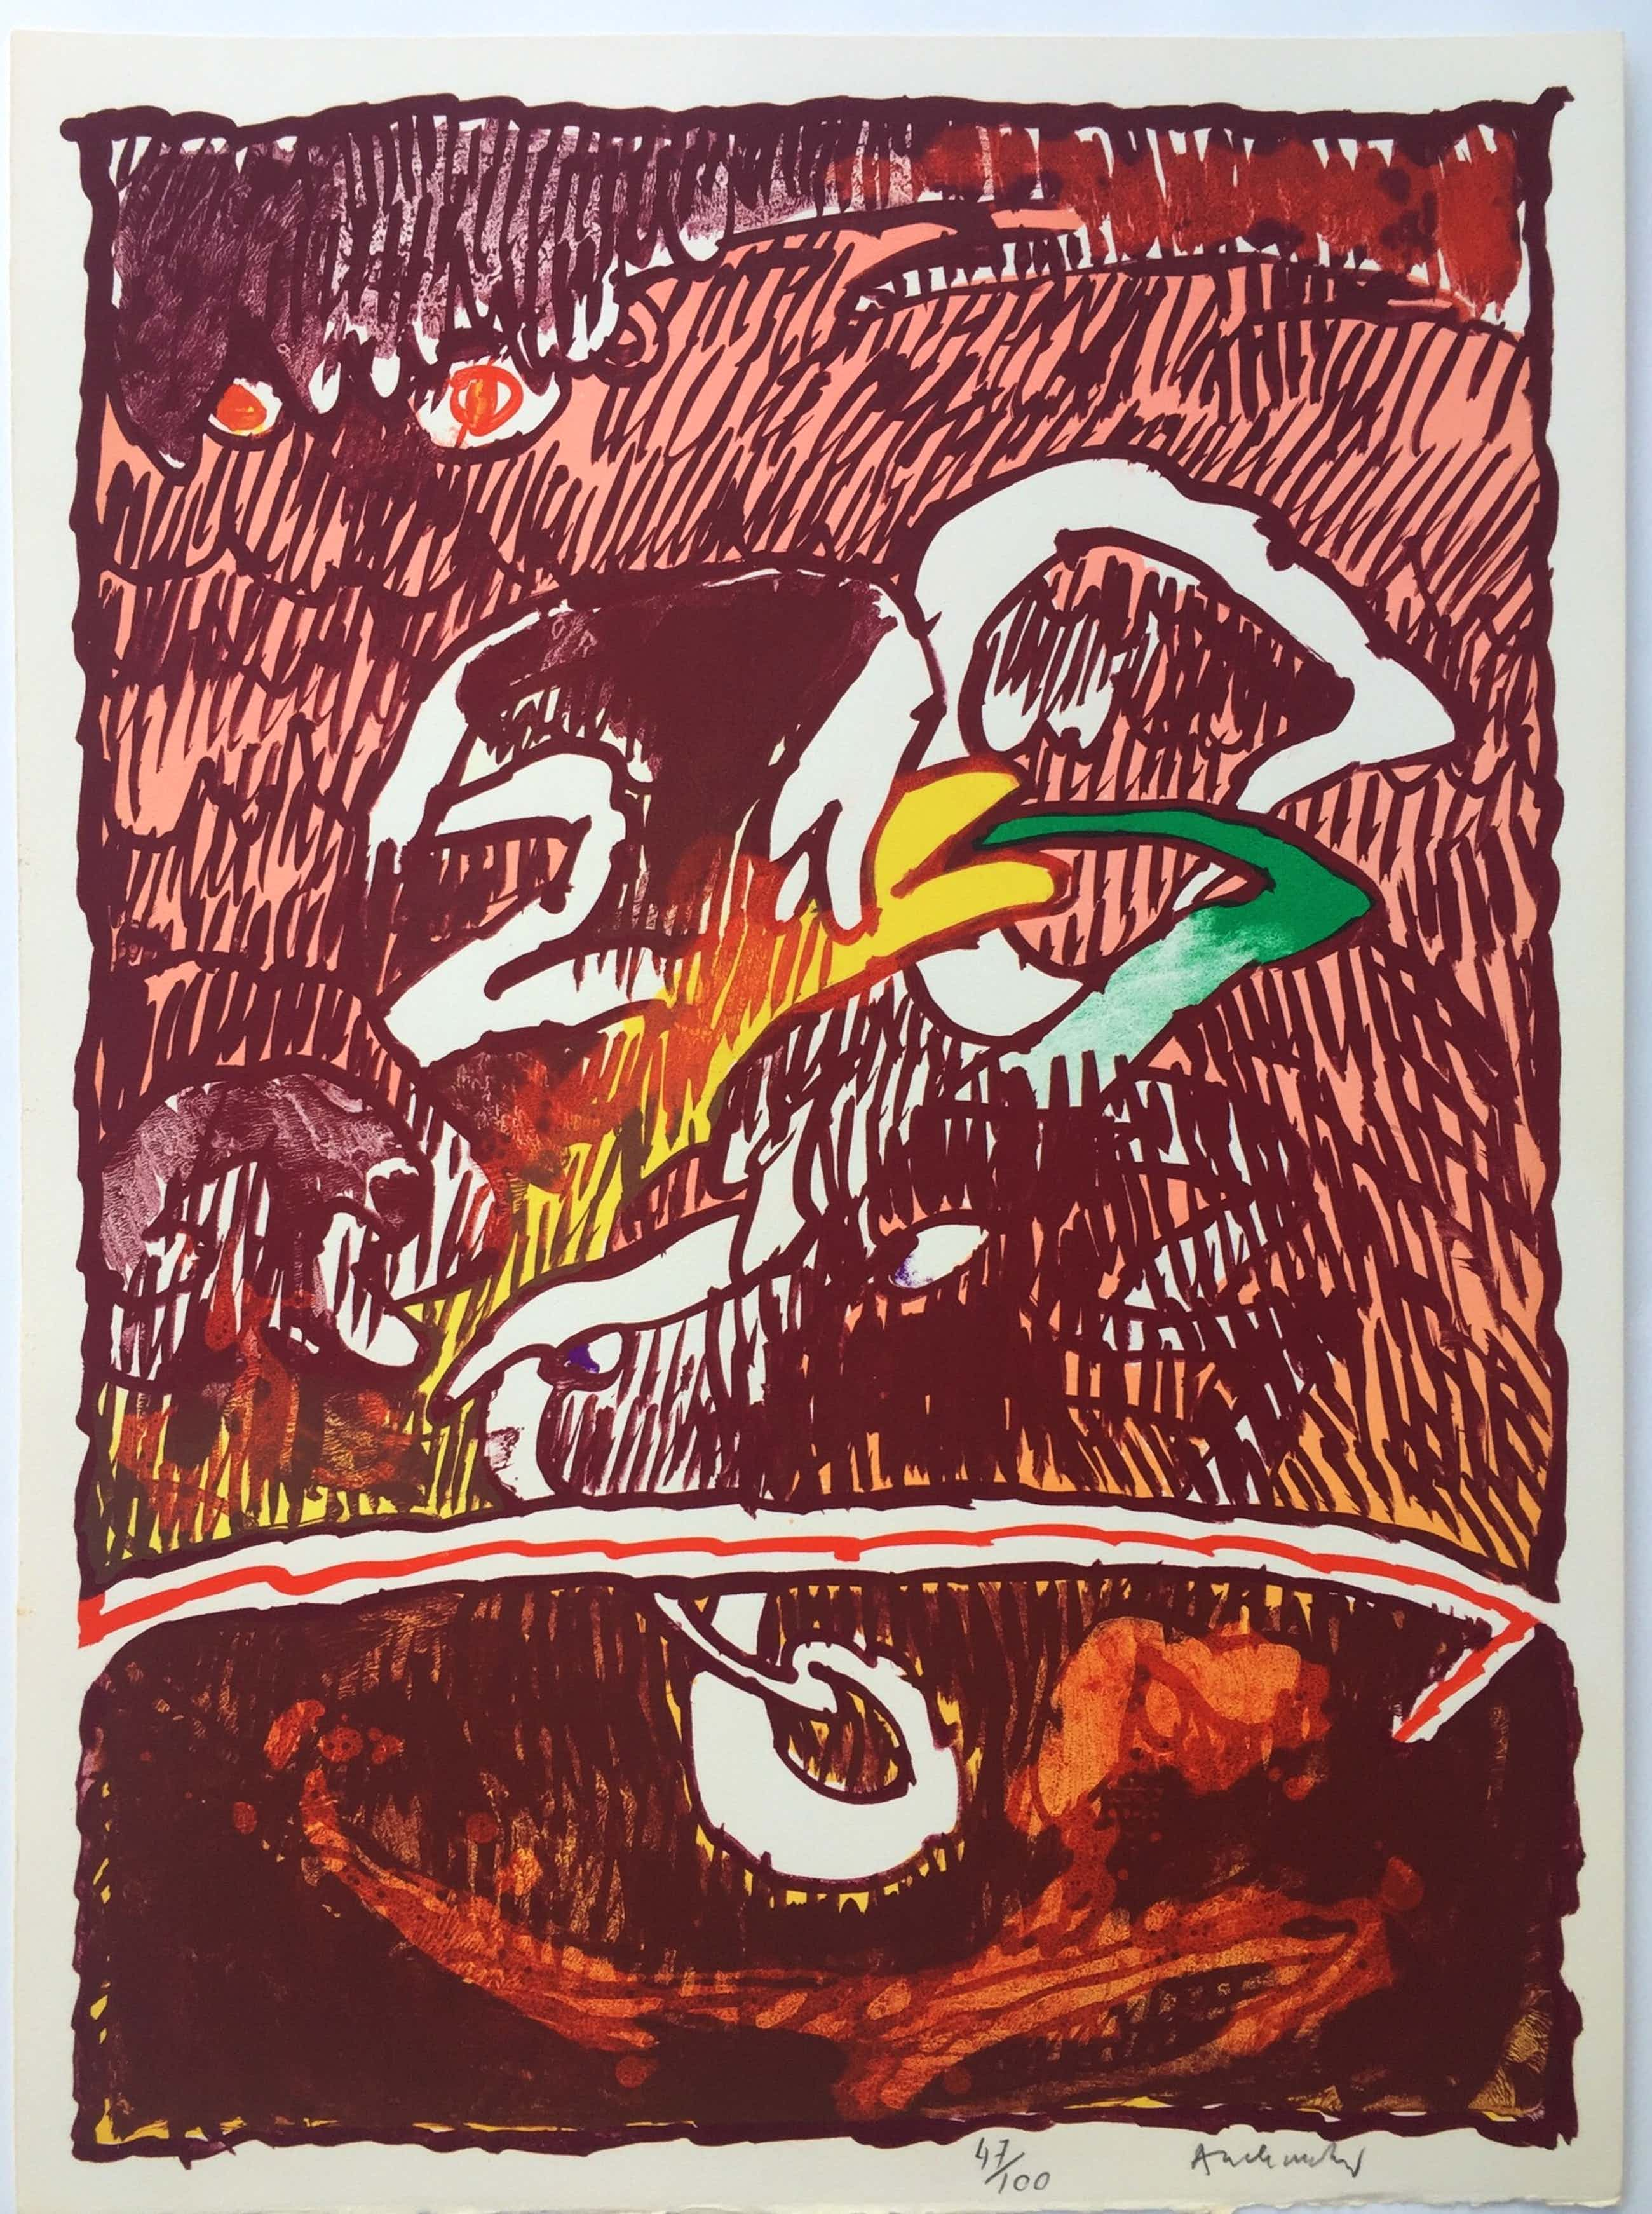 Pierre Alechinsky - litho 'Invisible Flying Objects' - 1978 kopen? Bied vanaf 725!